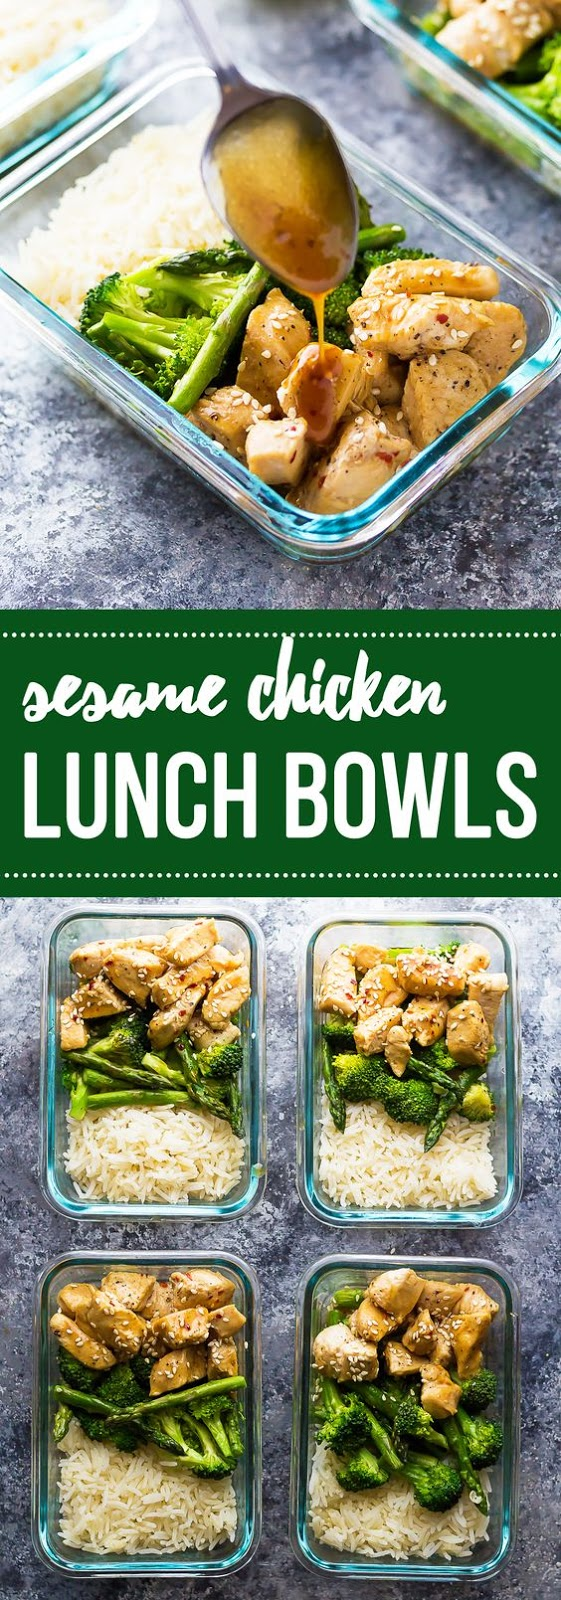 Honey Sesame Chicken Lunch Bowls #honey #sesame #chicken #chickenrecipes #lunchrecipes #lunchideas